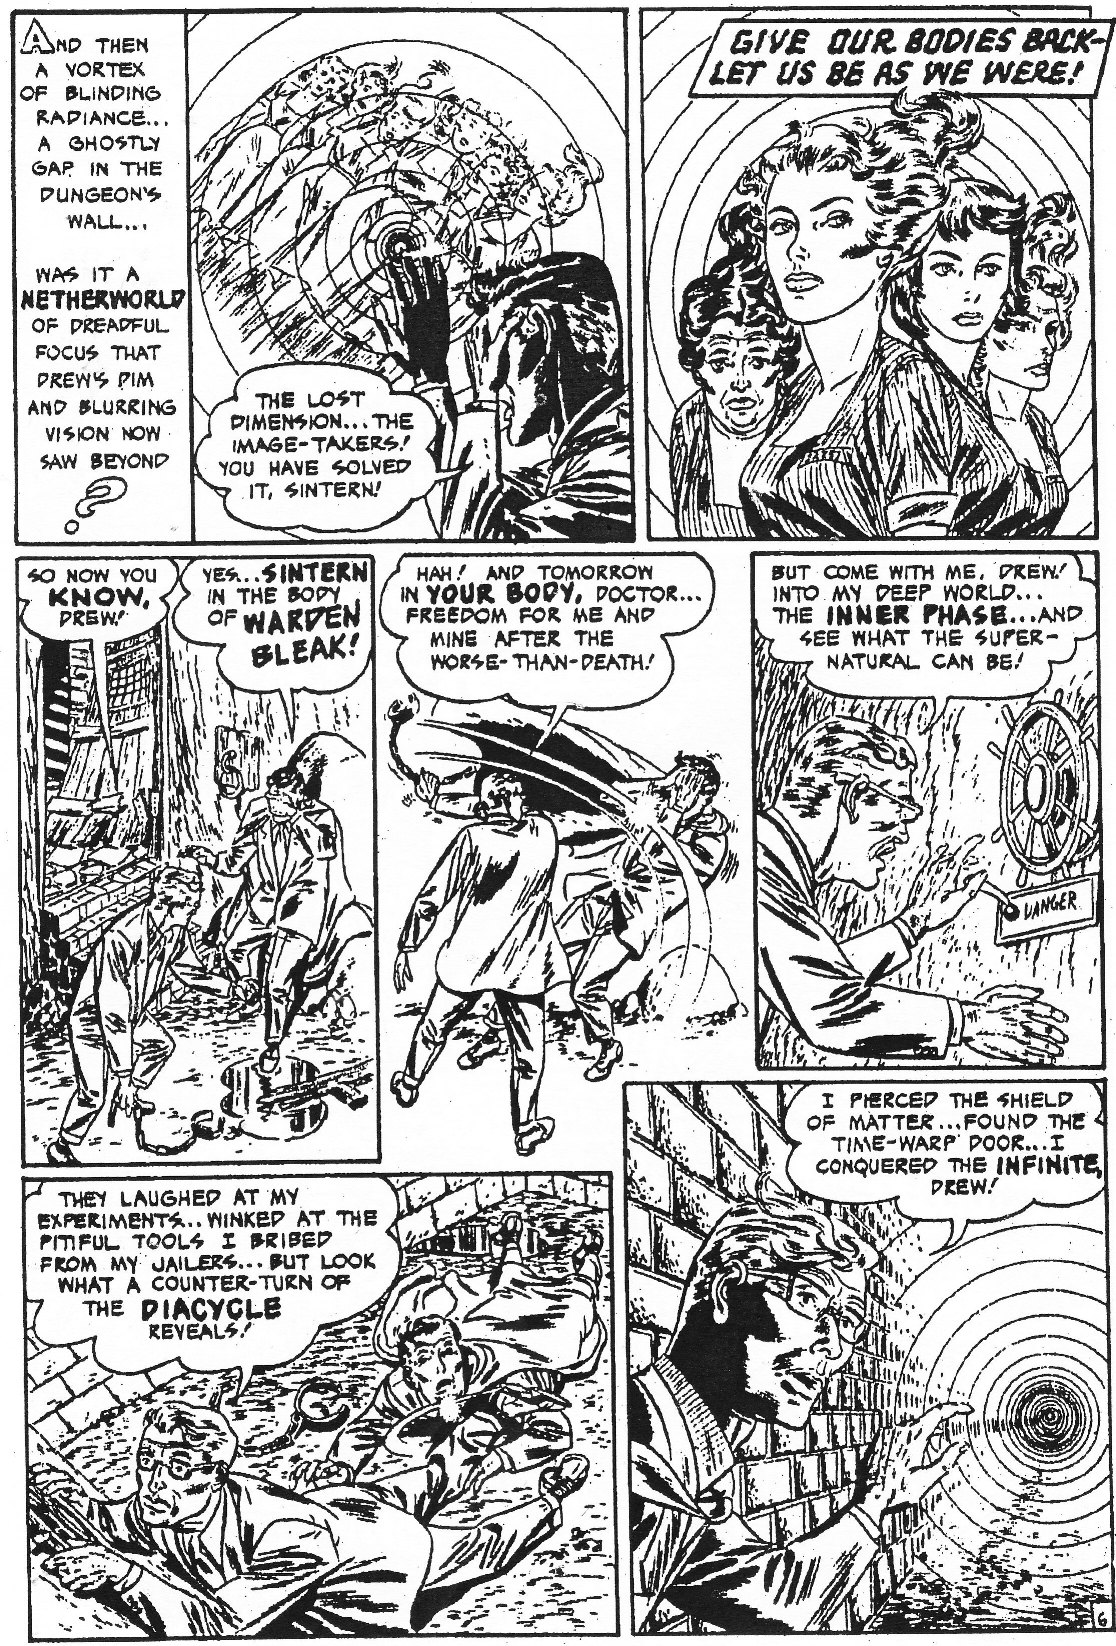 Read online Men of Mystery Comics comic -  Issue #70 - 48